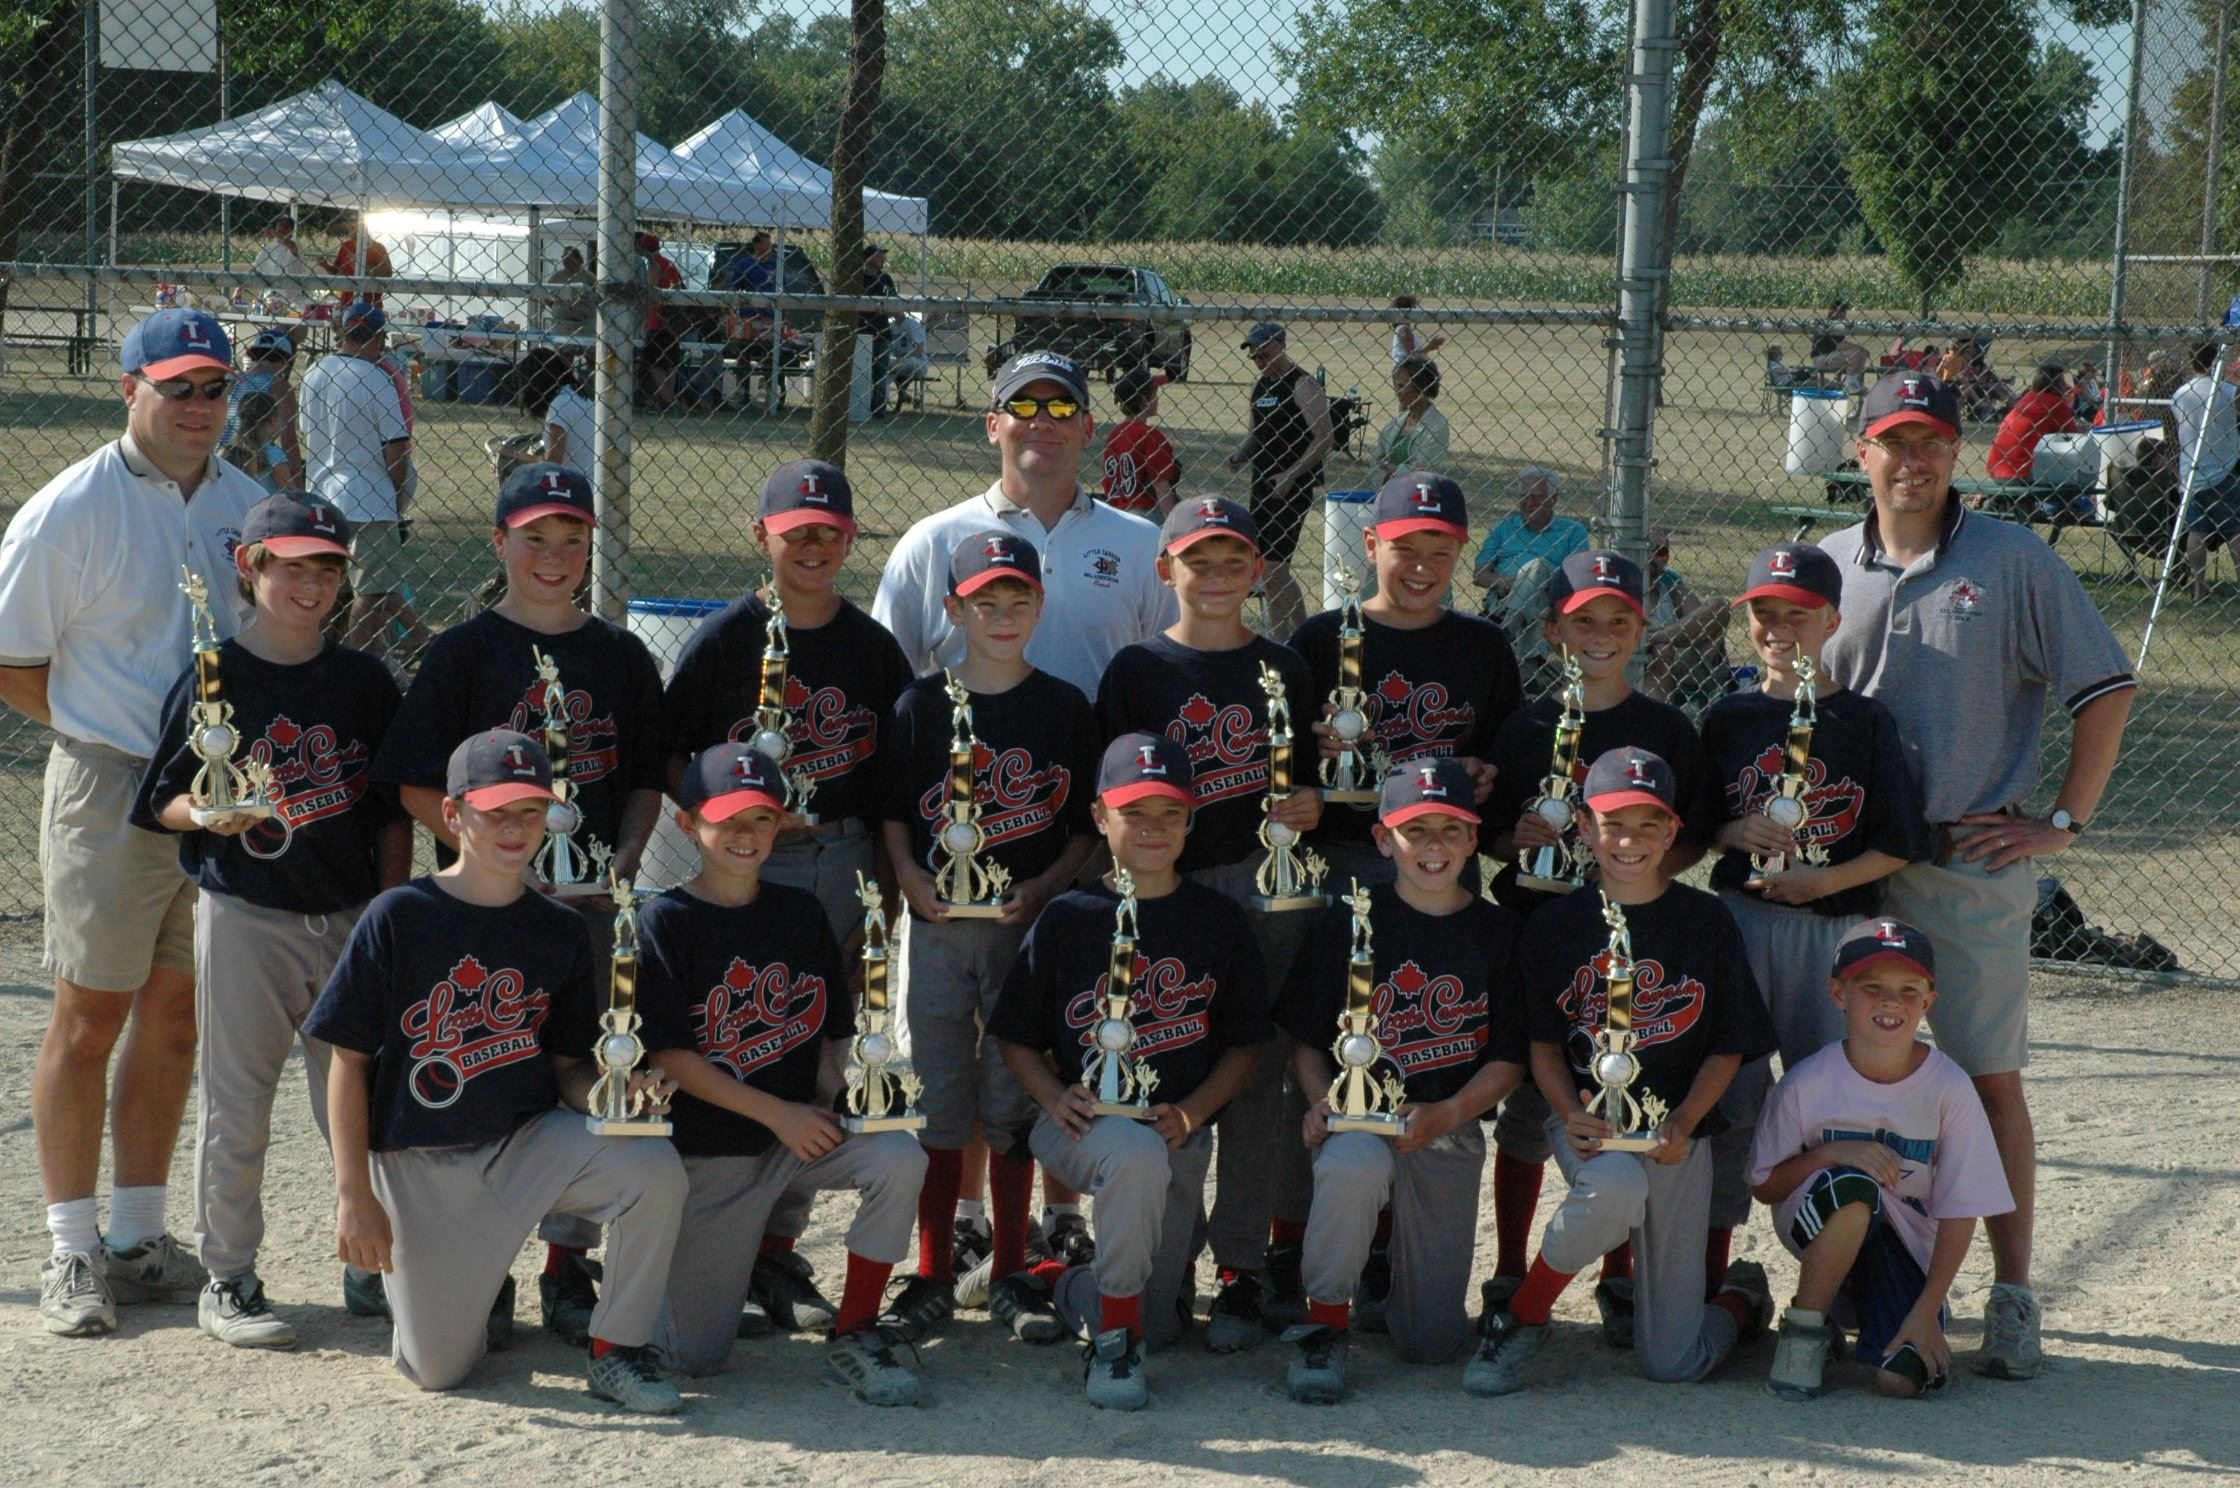 Youth Baseball Picture